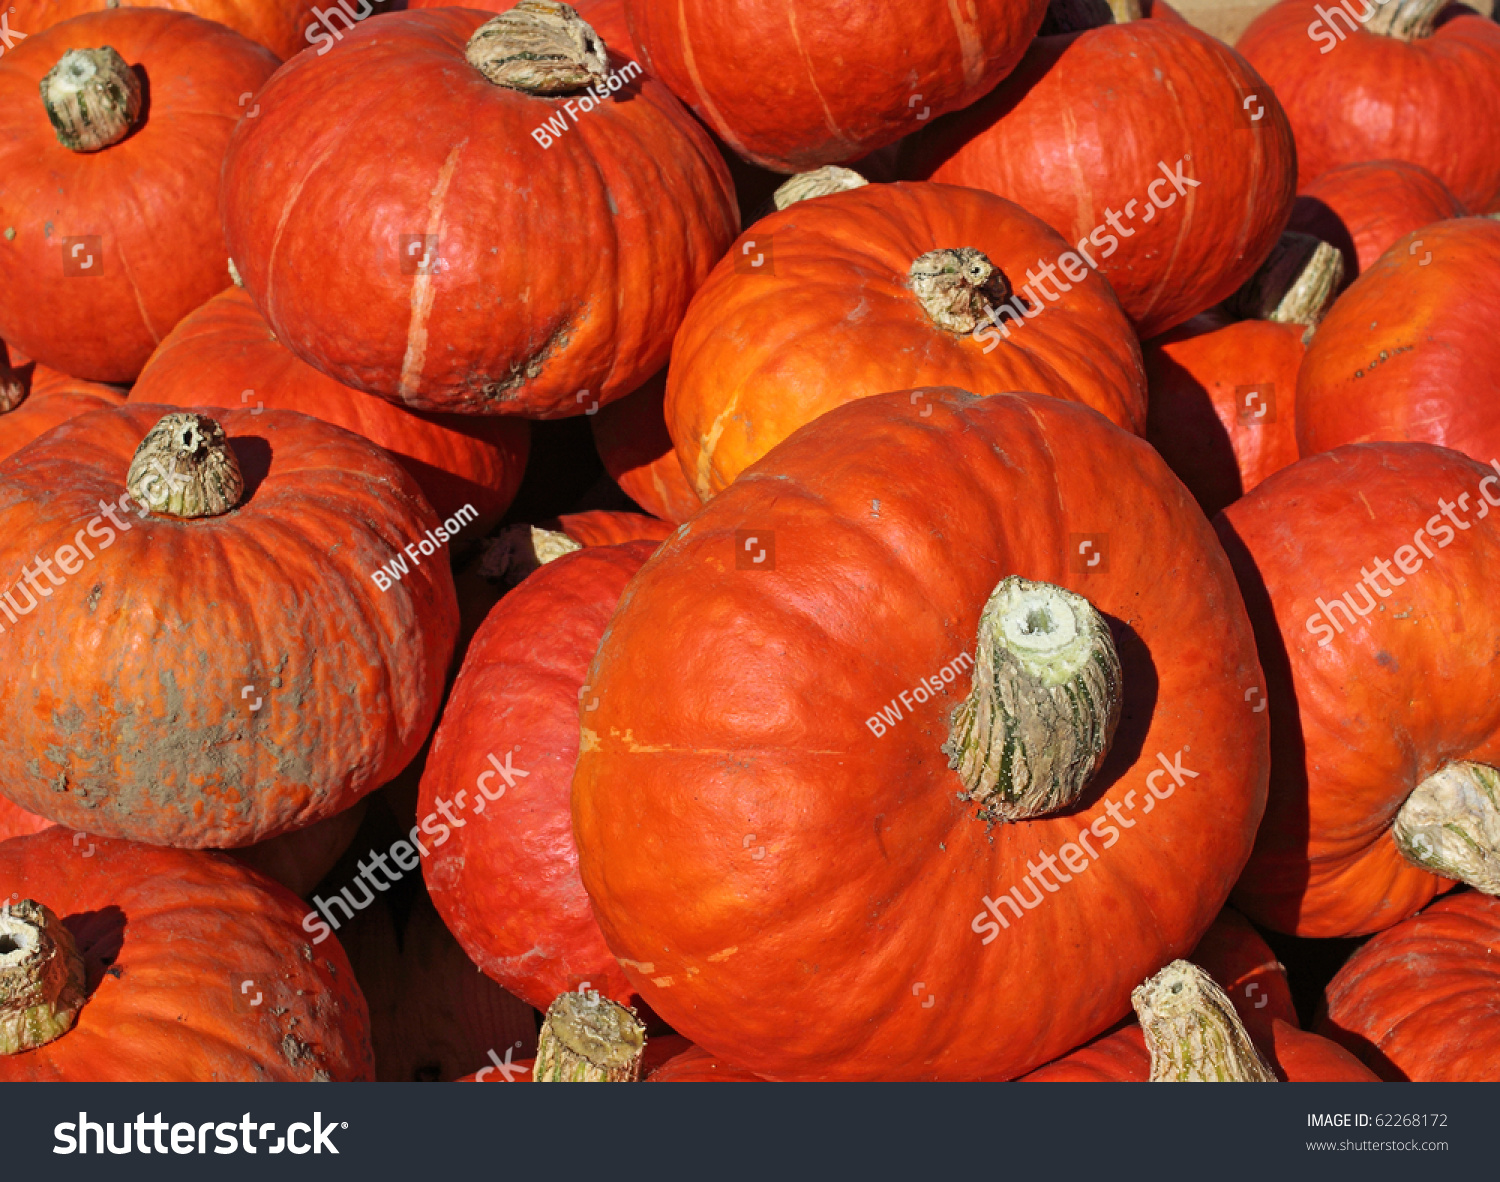 Several Recently Harvested Orange Squash In The Early Morning Sunlight. Stock Photo 62268172 : Shutterstock